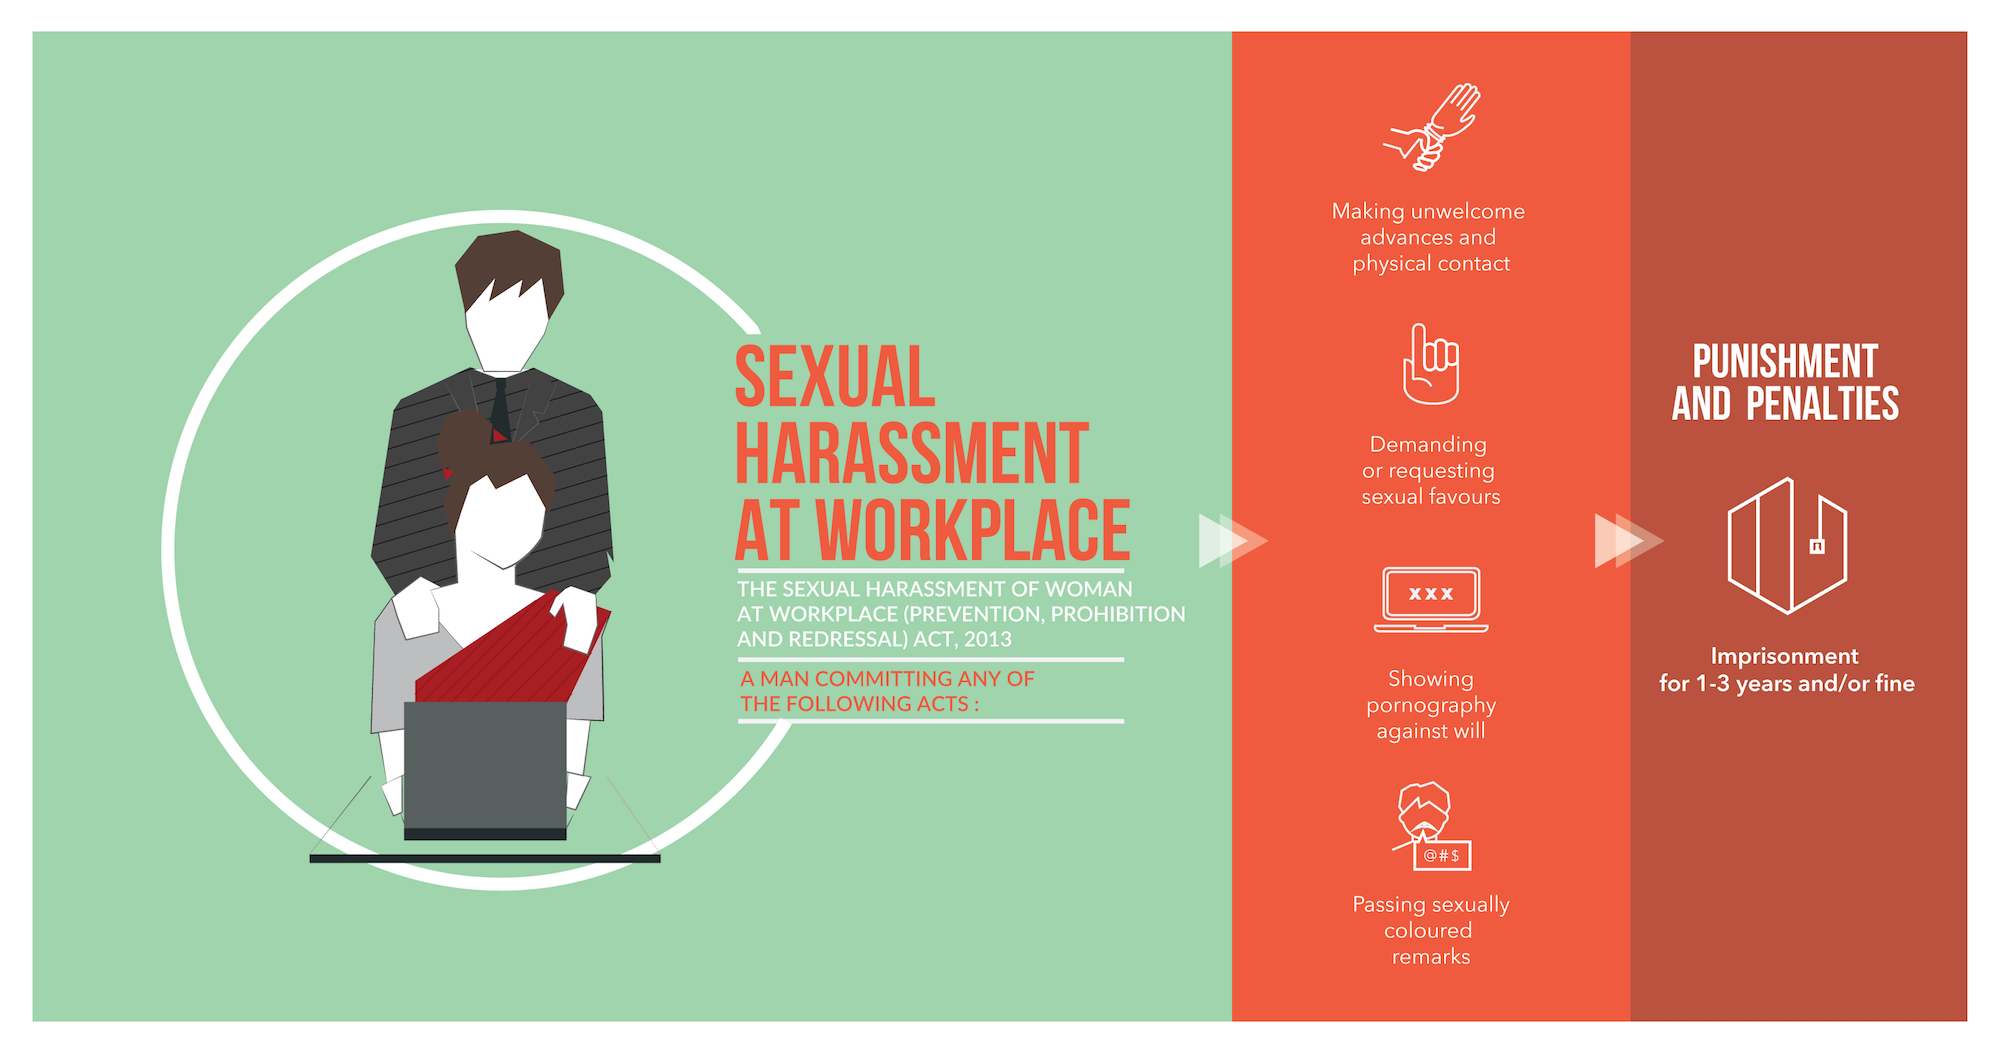 an analysis of the topic of the sexual harassment Sexual harassment sexual harassment in a healthcare workplace is a very important topic to discuss even though it is often swept under the rug even with all law, literature and discussions on sexual harassment, people still remain confused about what exactly constitutes sexual harassment.